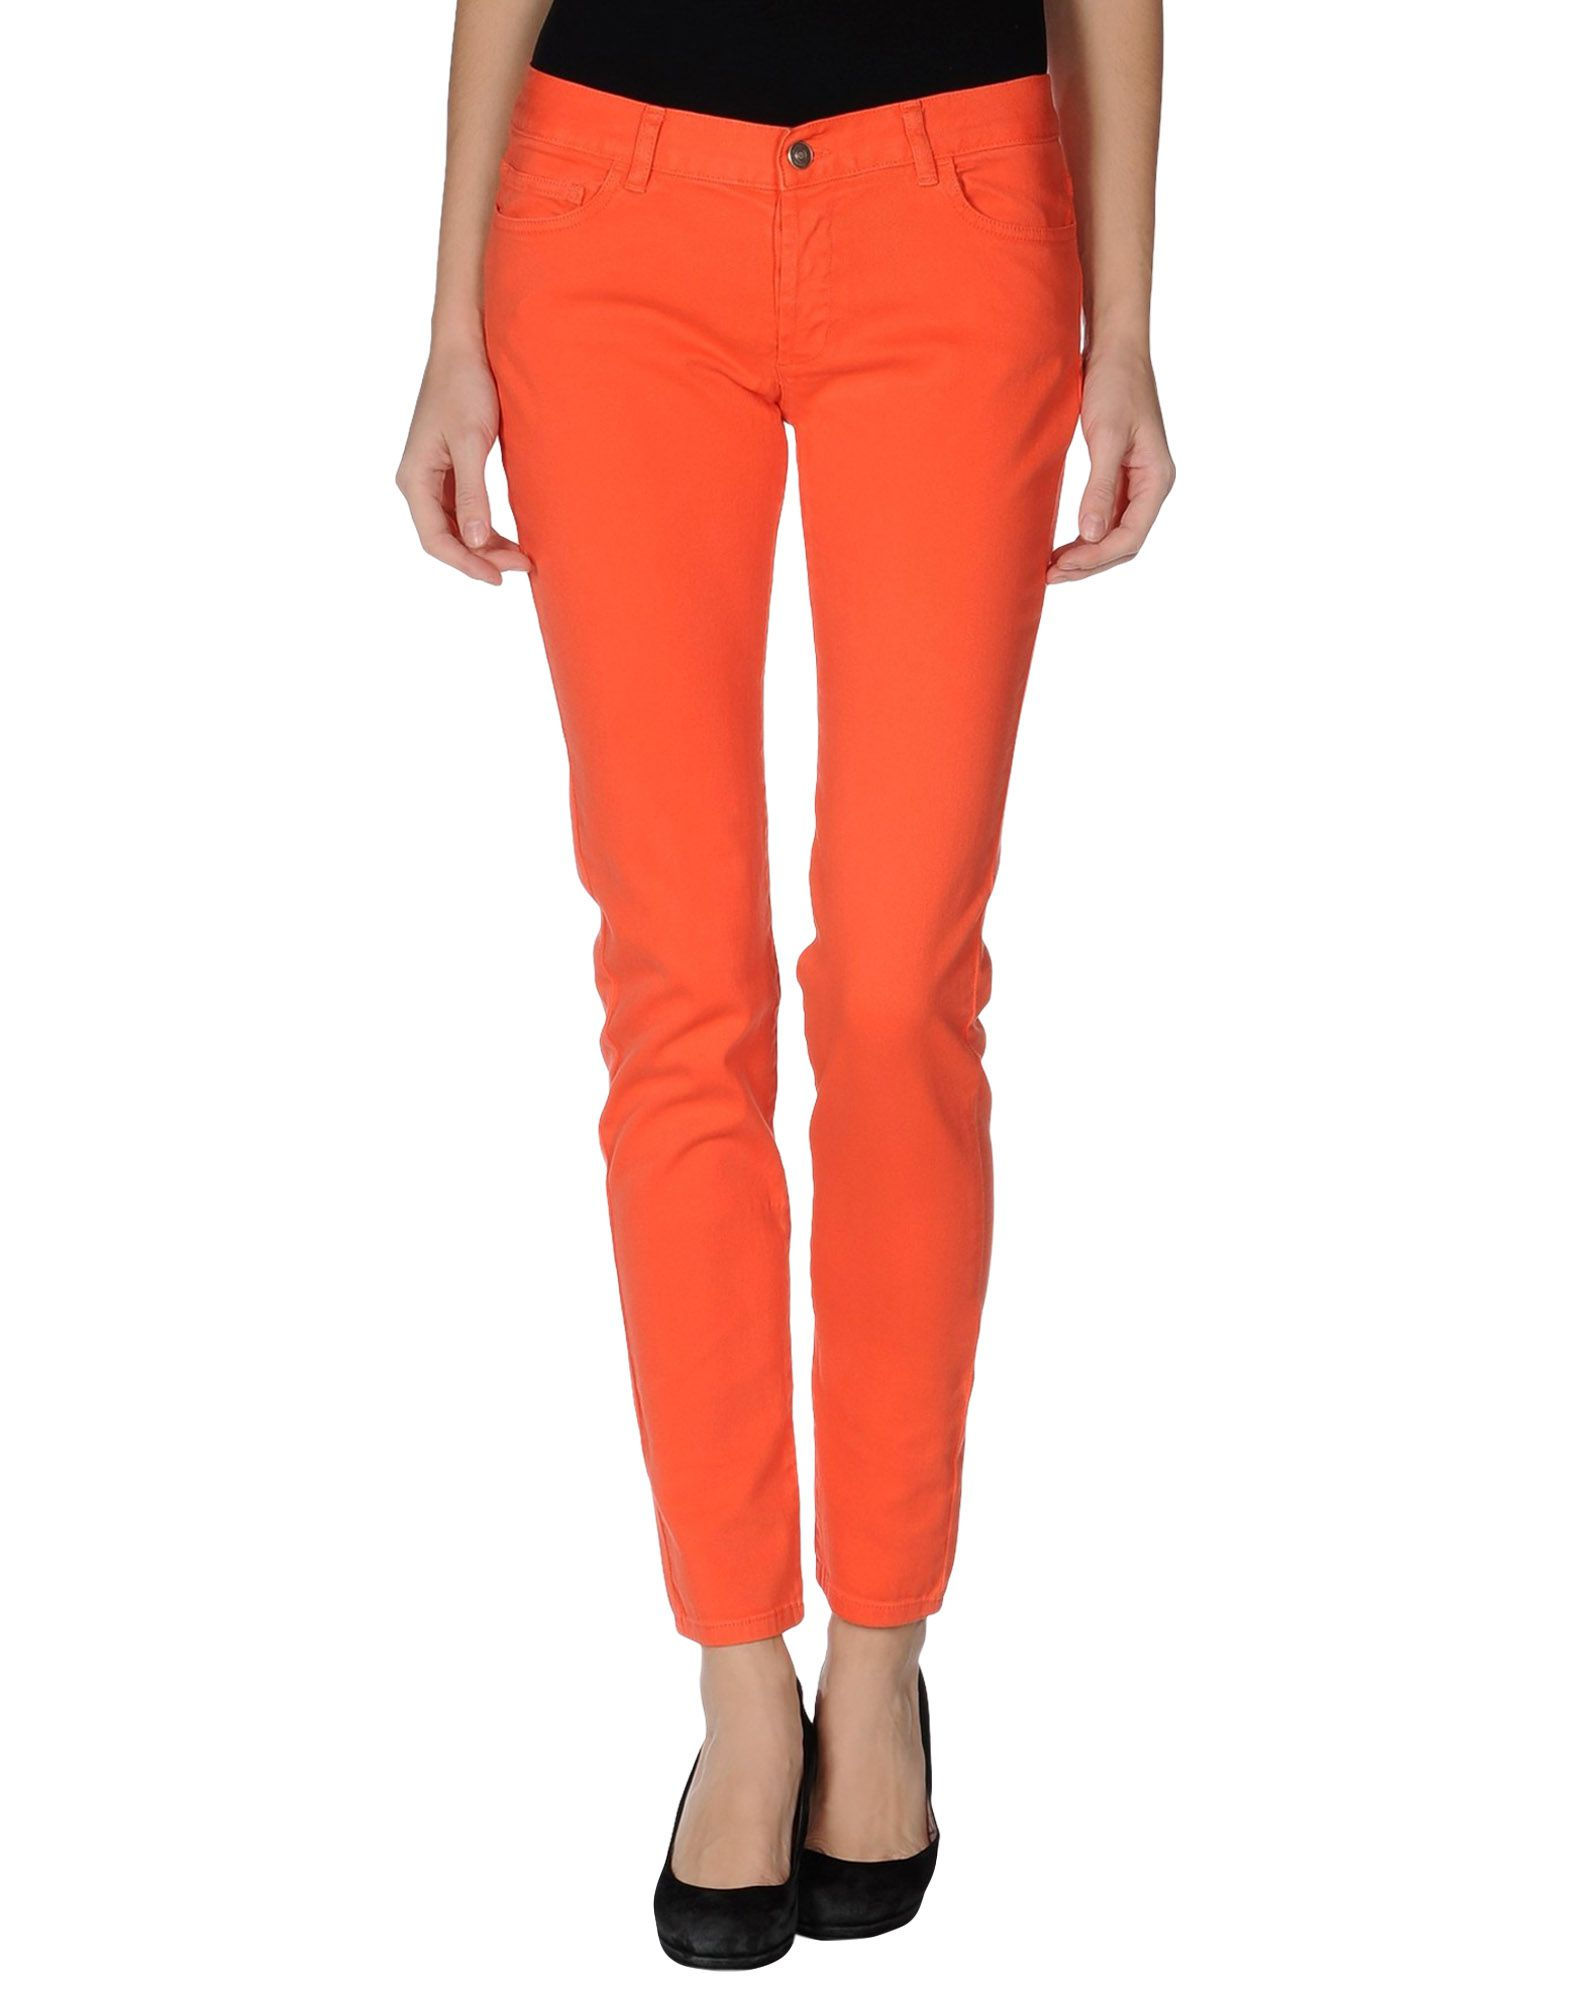 a7d45bd8d1c Lyst - See By Chloé Denim Pants in Orange